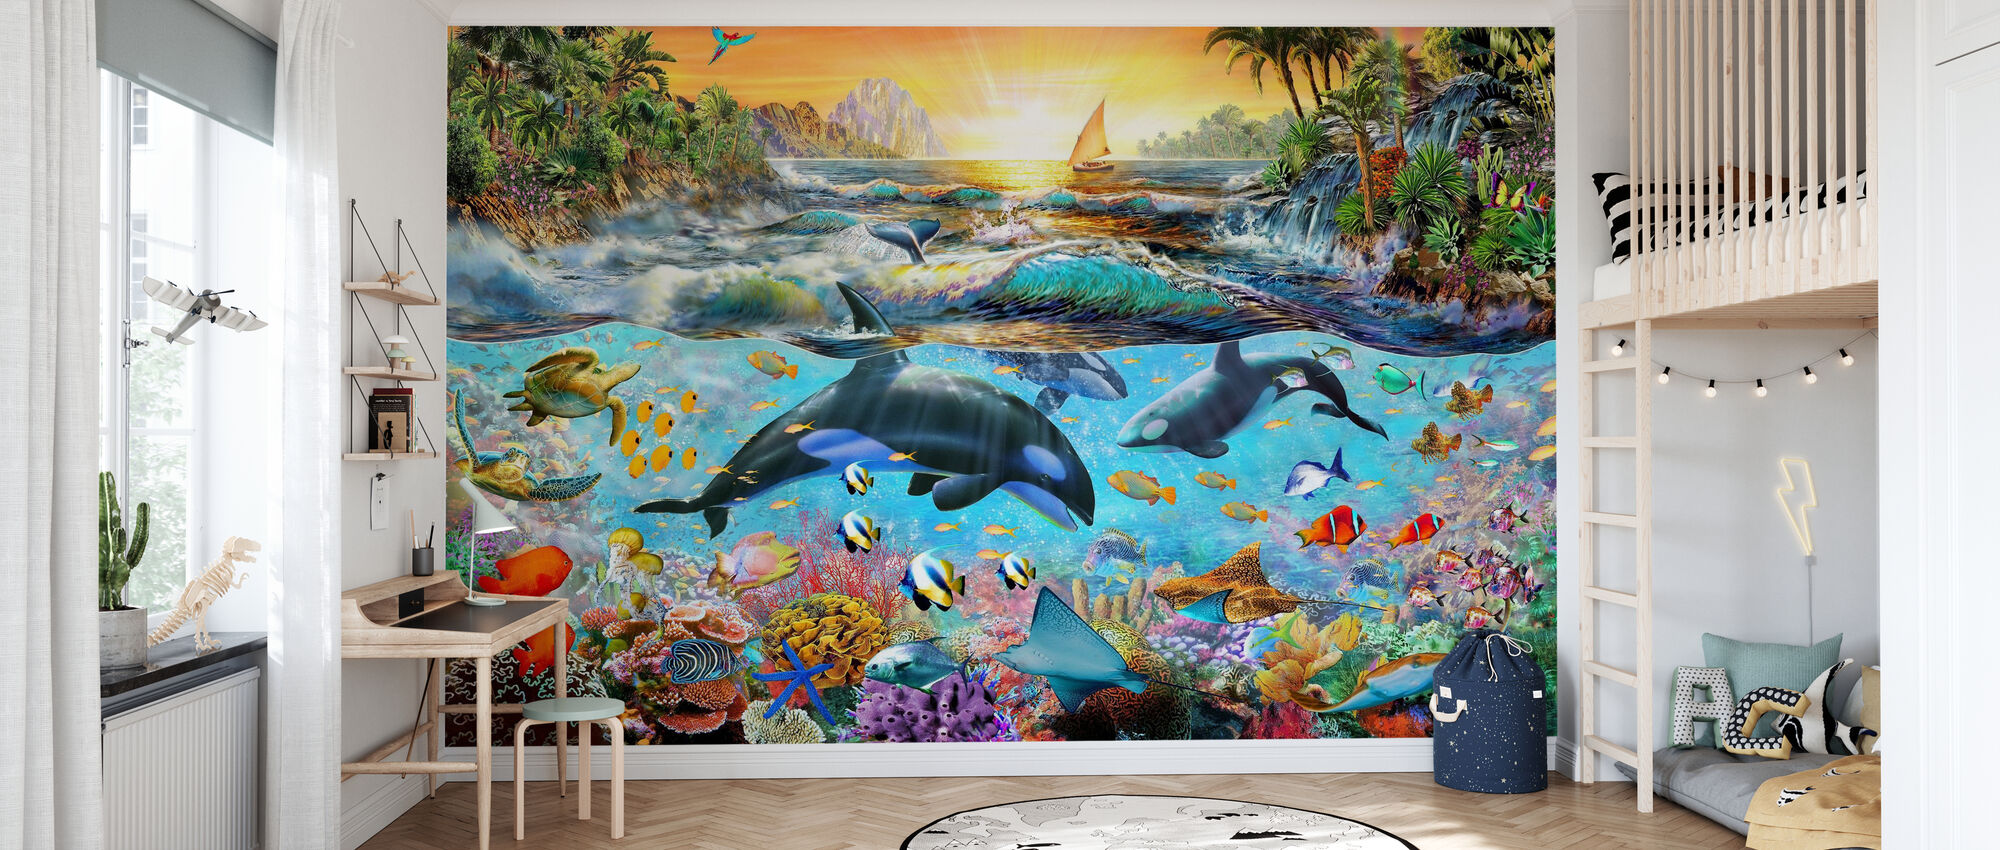 Orca Paradise - Wallpaper - Kids Room